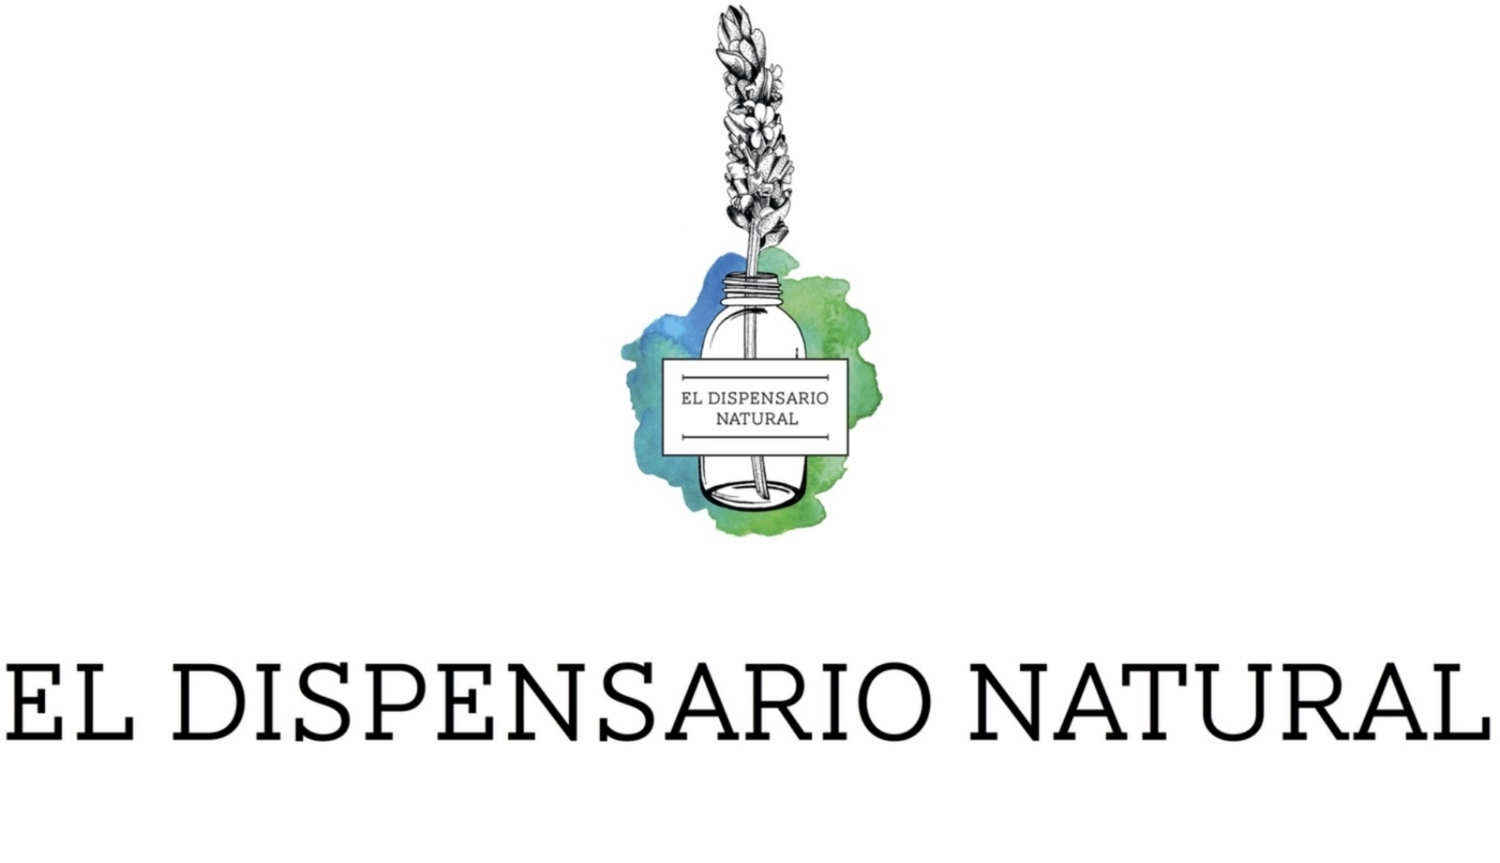 El Dispensario Natural